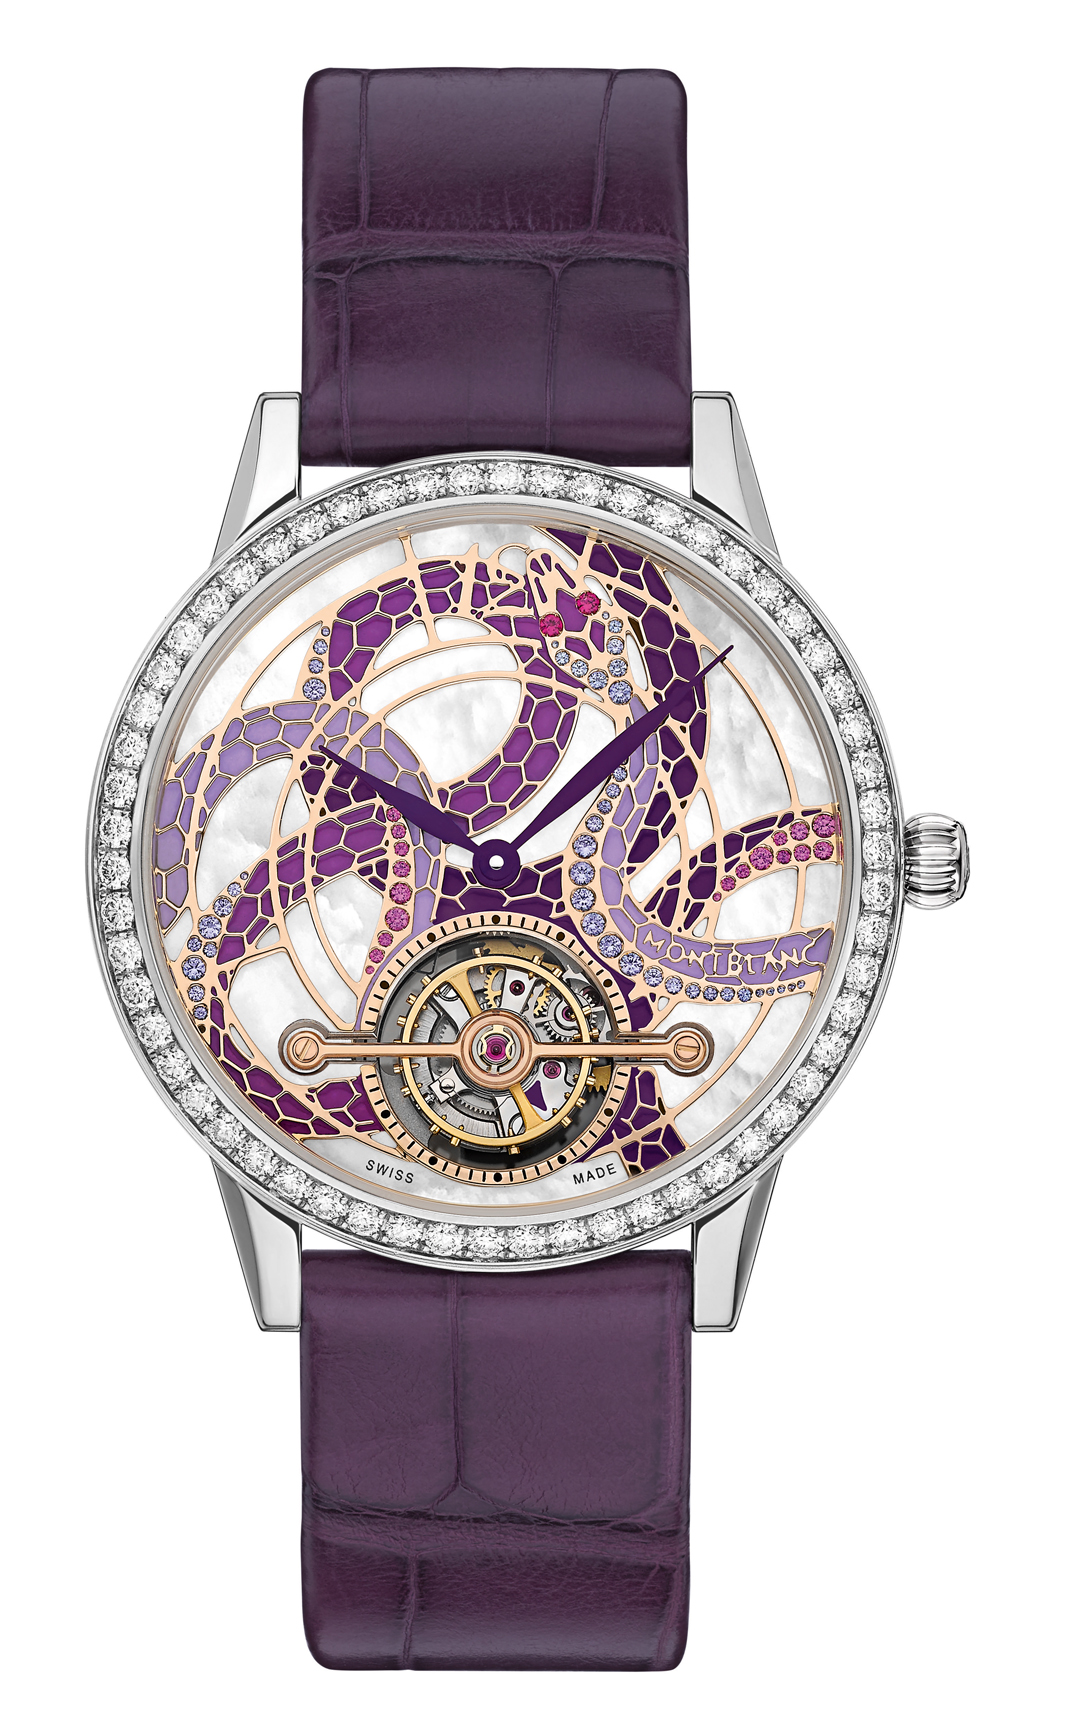 The Montblanc ExoTourbillon watch for women features an artistic serpent dial.